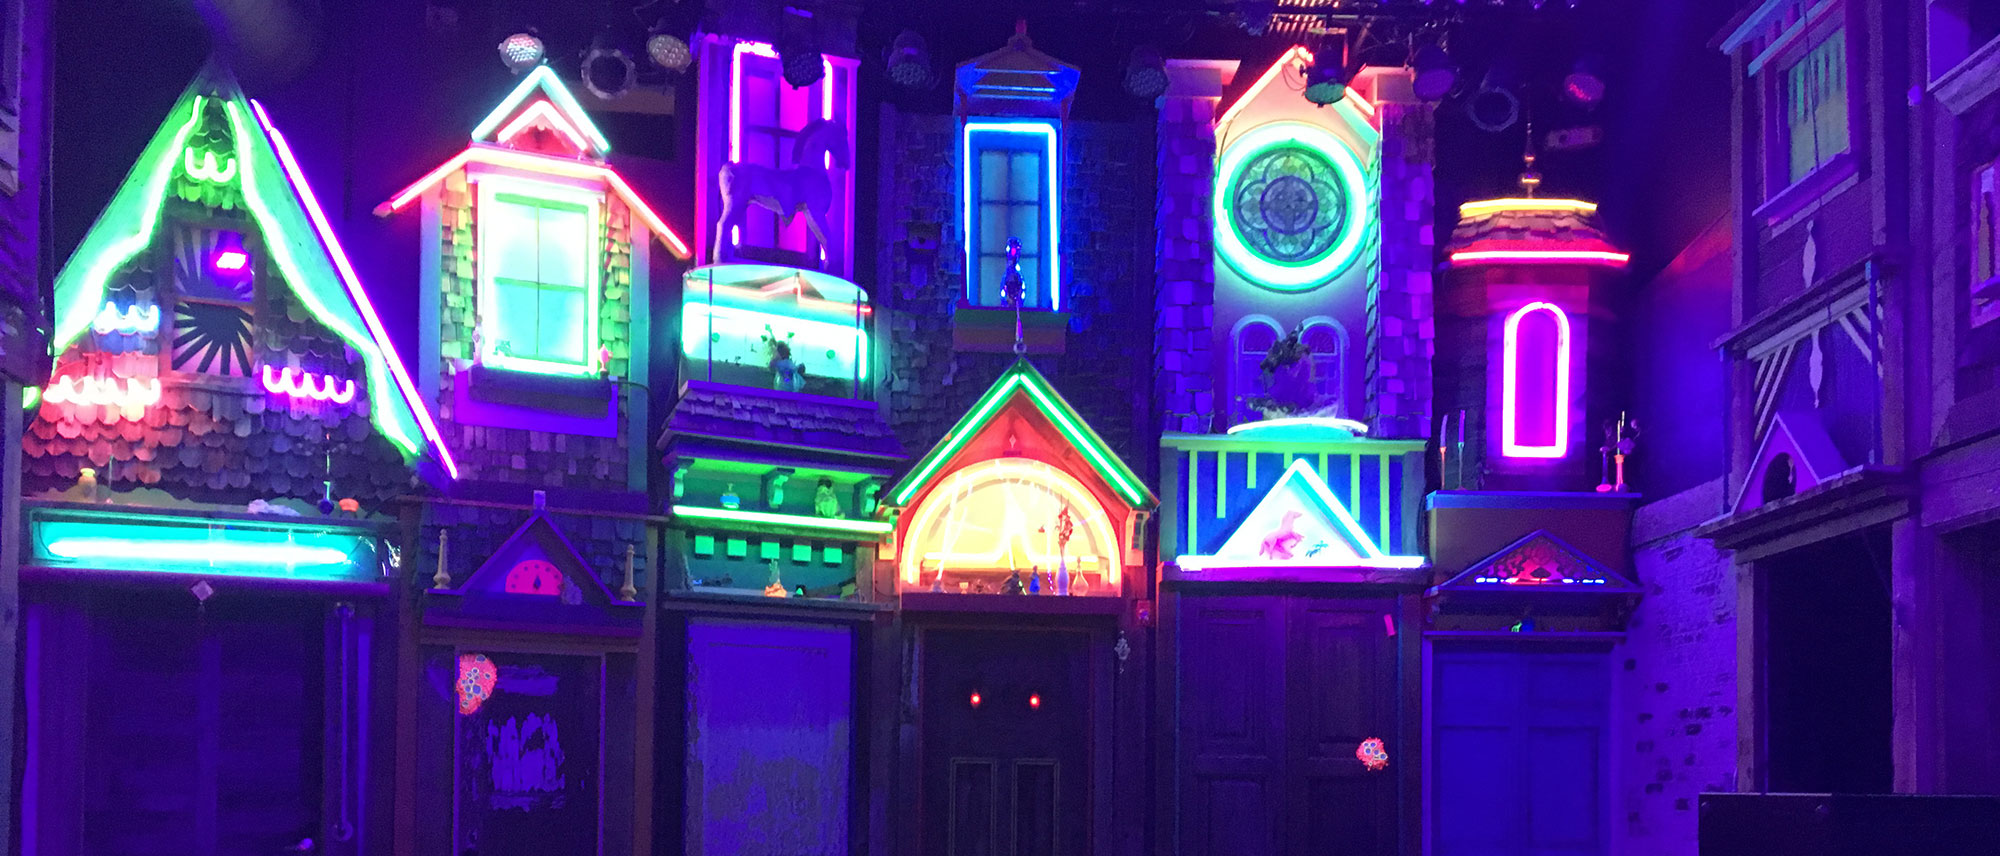 Santa Fe's Meow Wolf Art Installation from the Perspective of a Grandparent